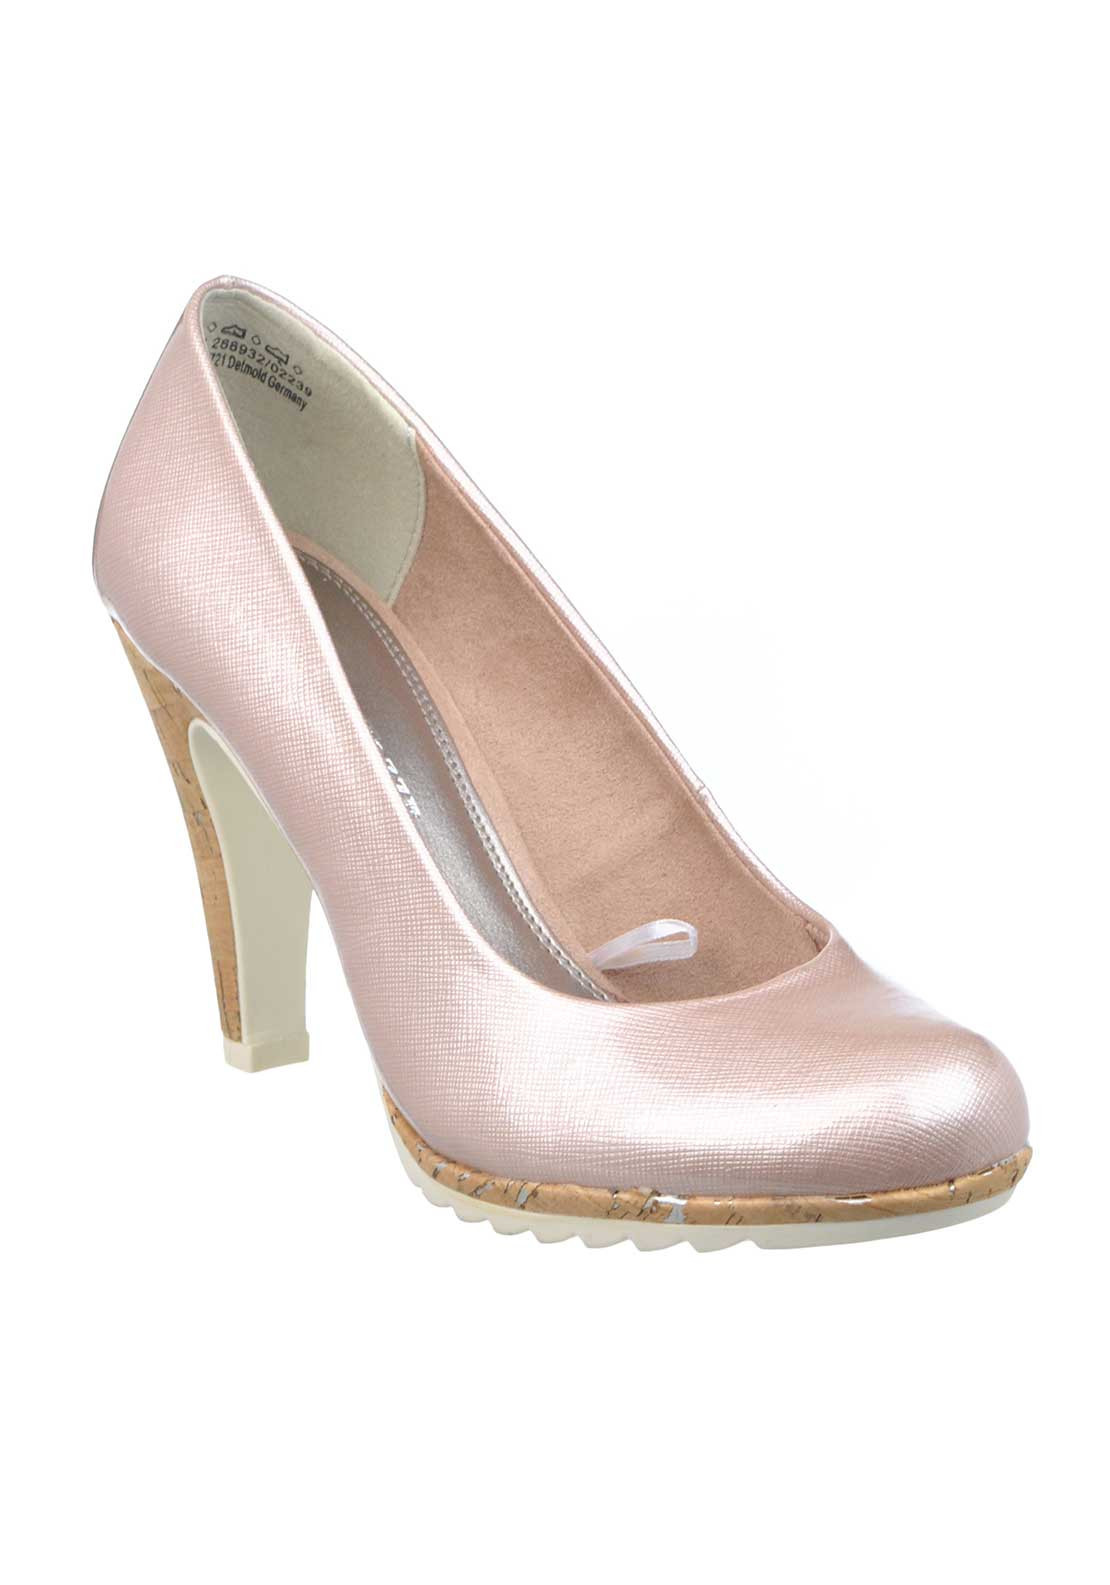 366c1c1c Marco Tozzi Patent Cork Heeled Court Shoes, Rose. Be the first to review  this product